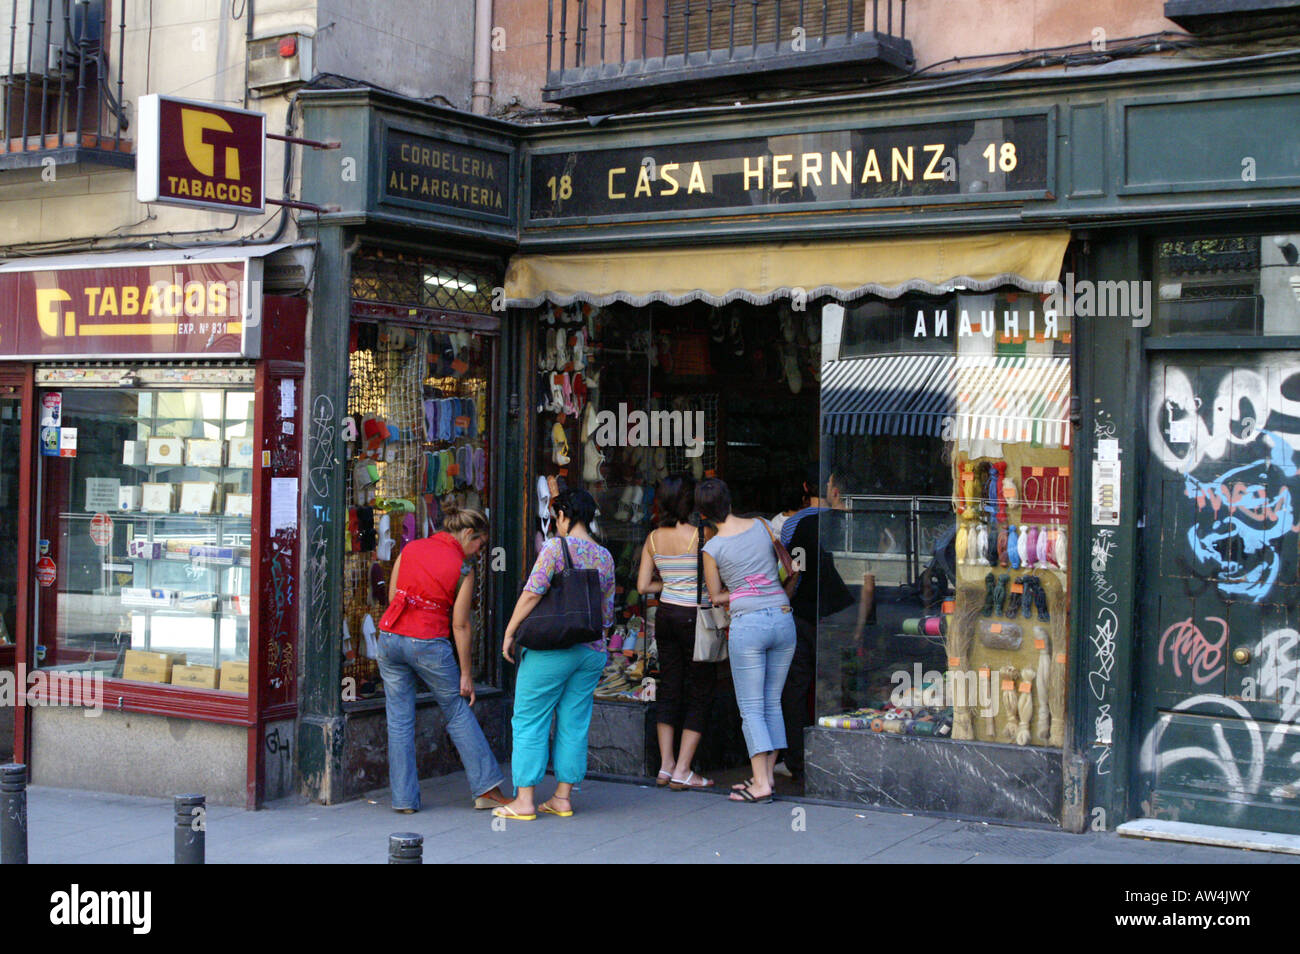 Famous casa hernanz in madrid near the plaza mayor stock - Casa hernanz madrid ...